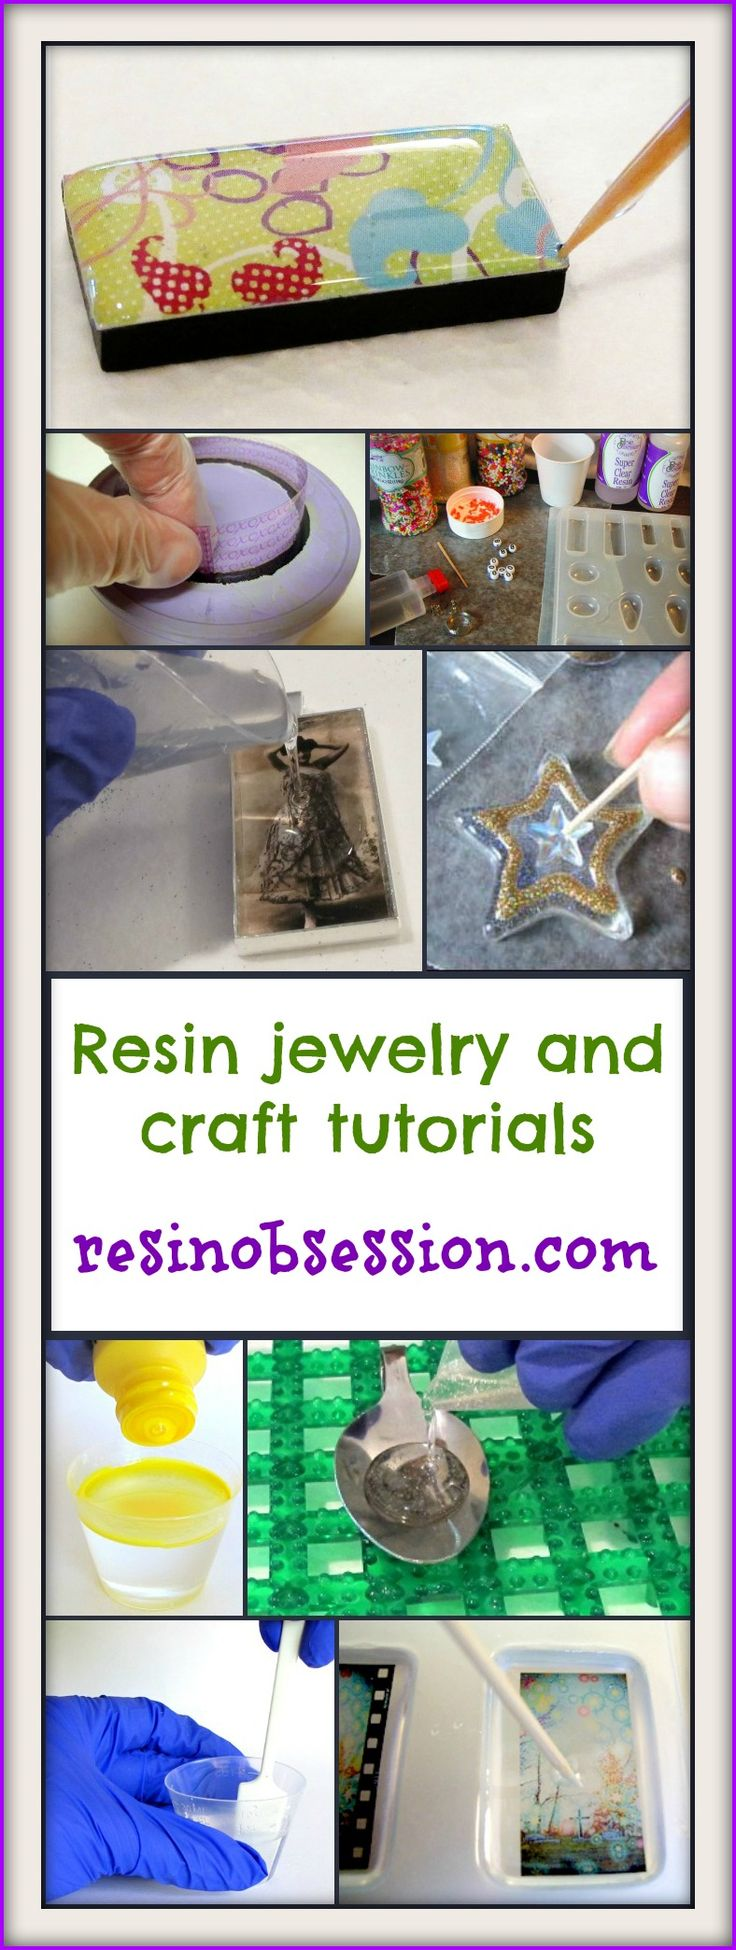 Resin for arts and crafts - Resin Obsession Blog Lots Of Tuts For Resin Jewelry And Resin Crafts